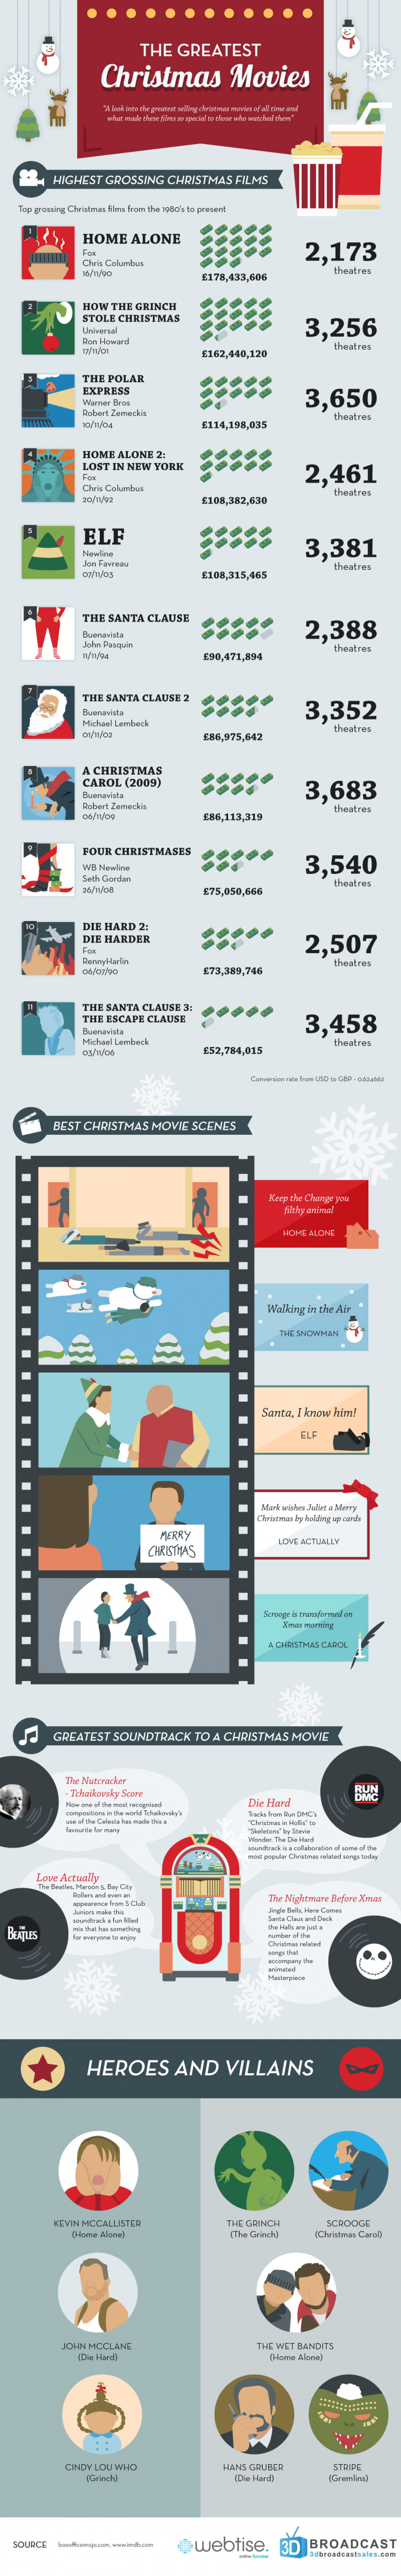 The Greatest Christmas Movies Infographic